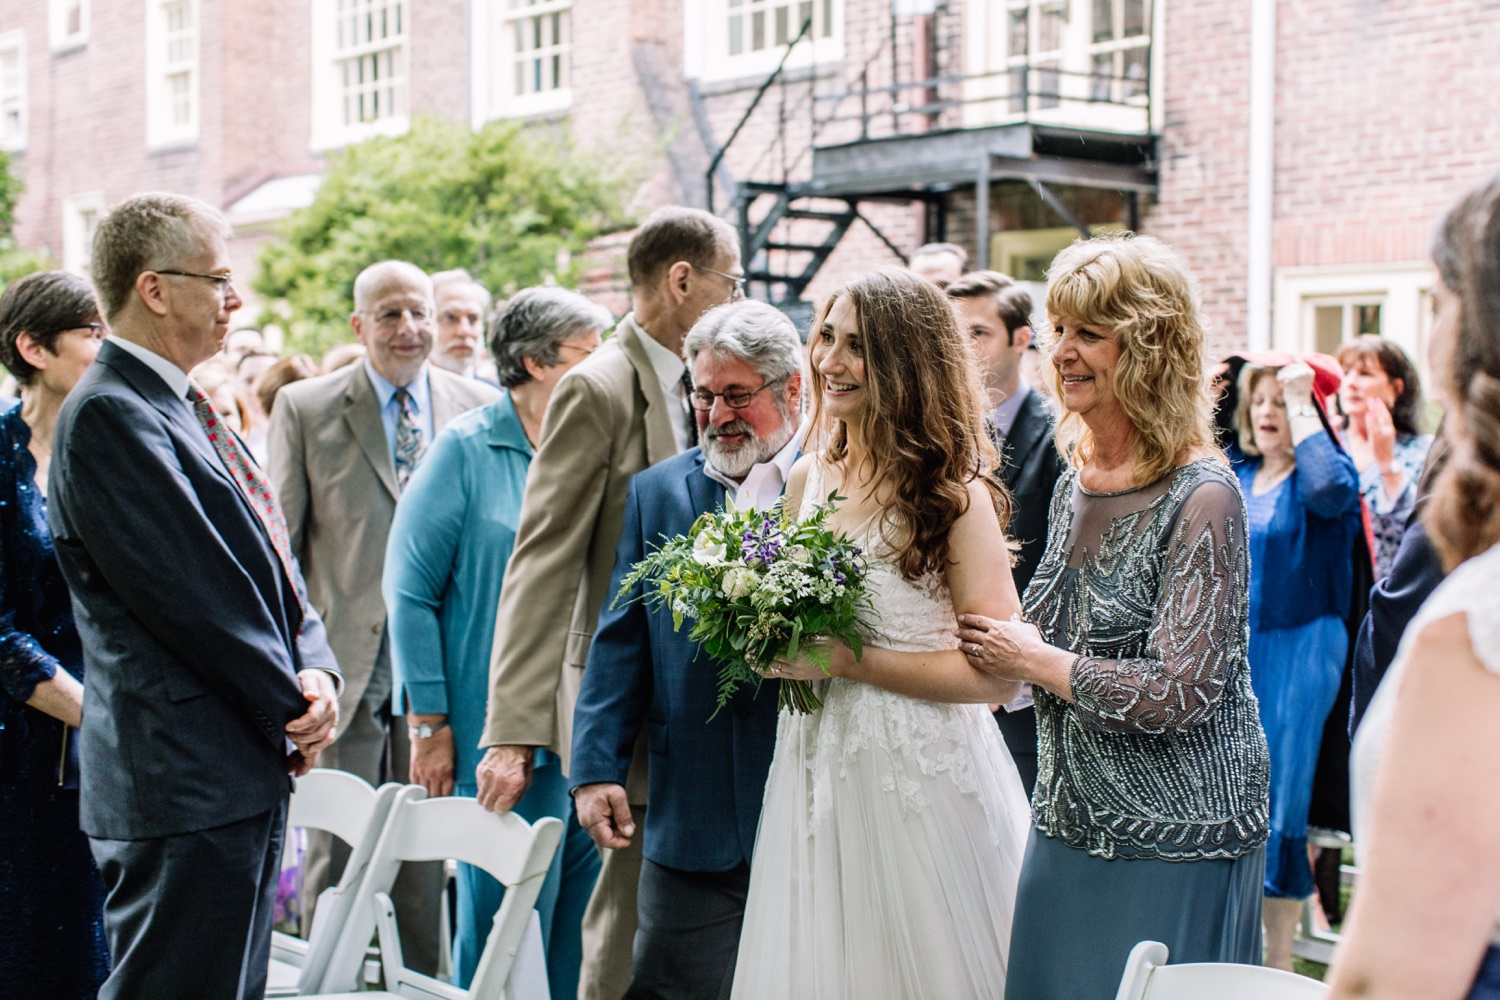 Emotional Wedding Moments in Photos - Ceremony